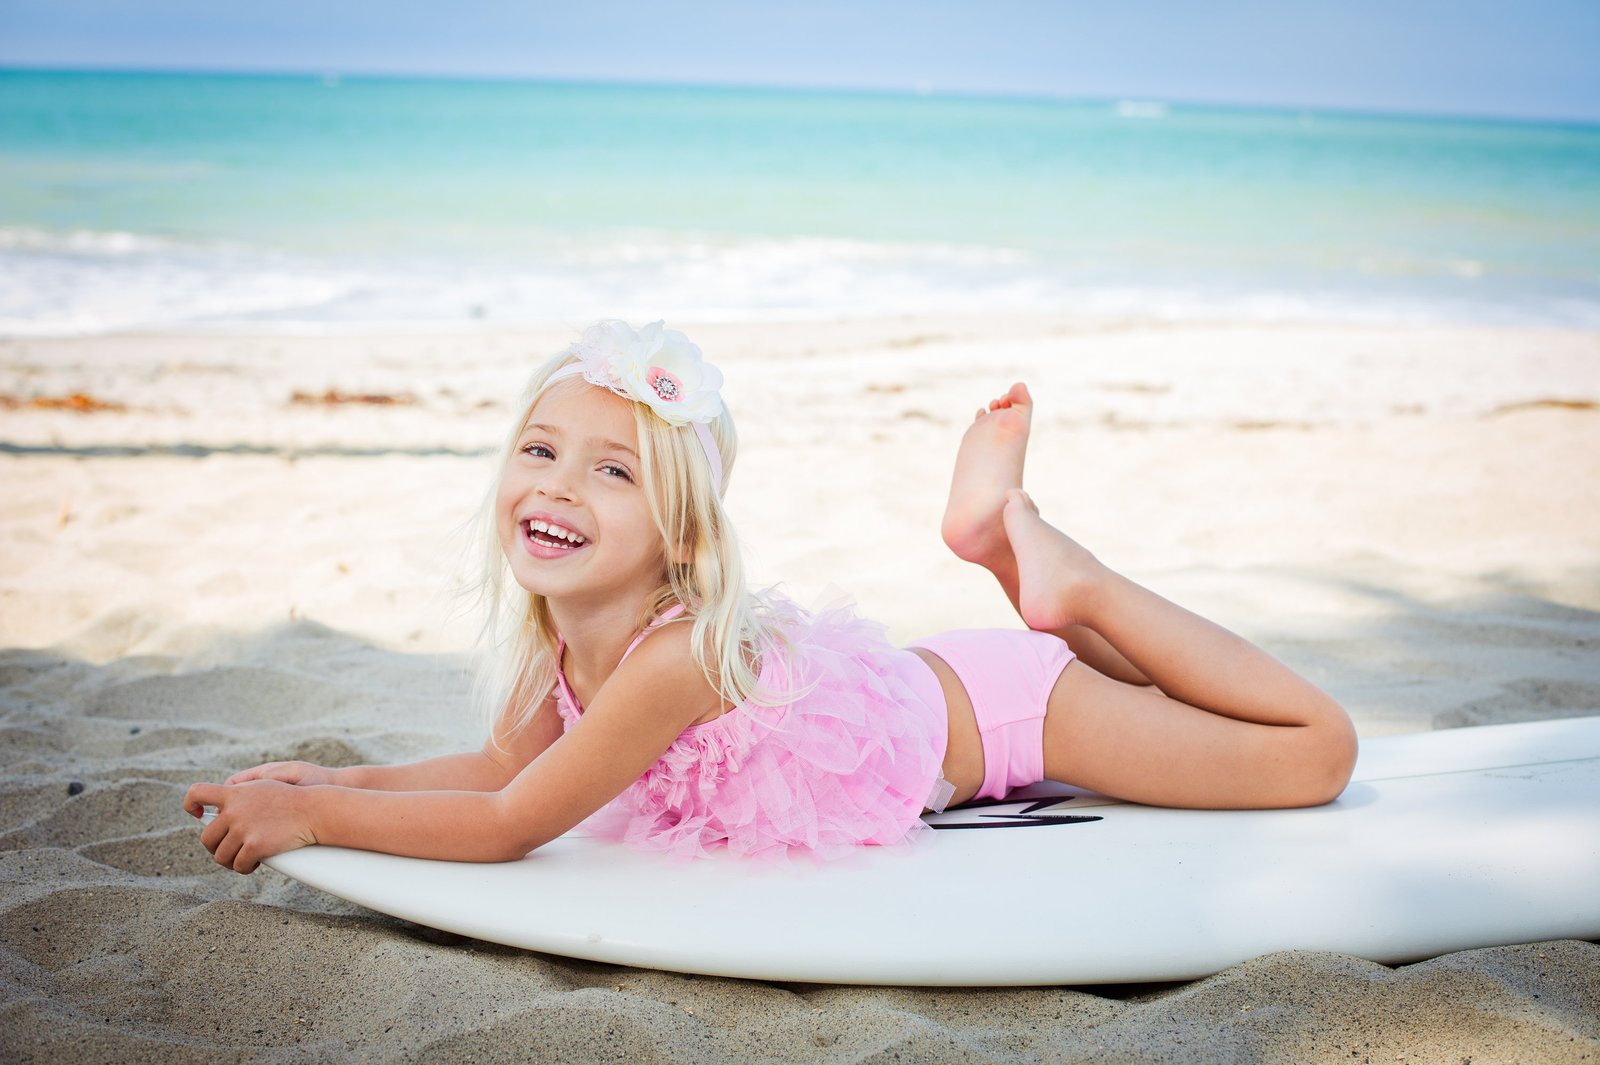 little girl playing on surfboard at beach